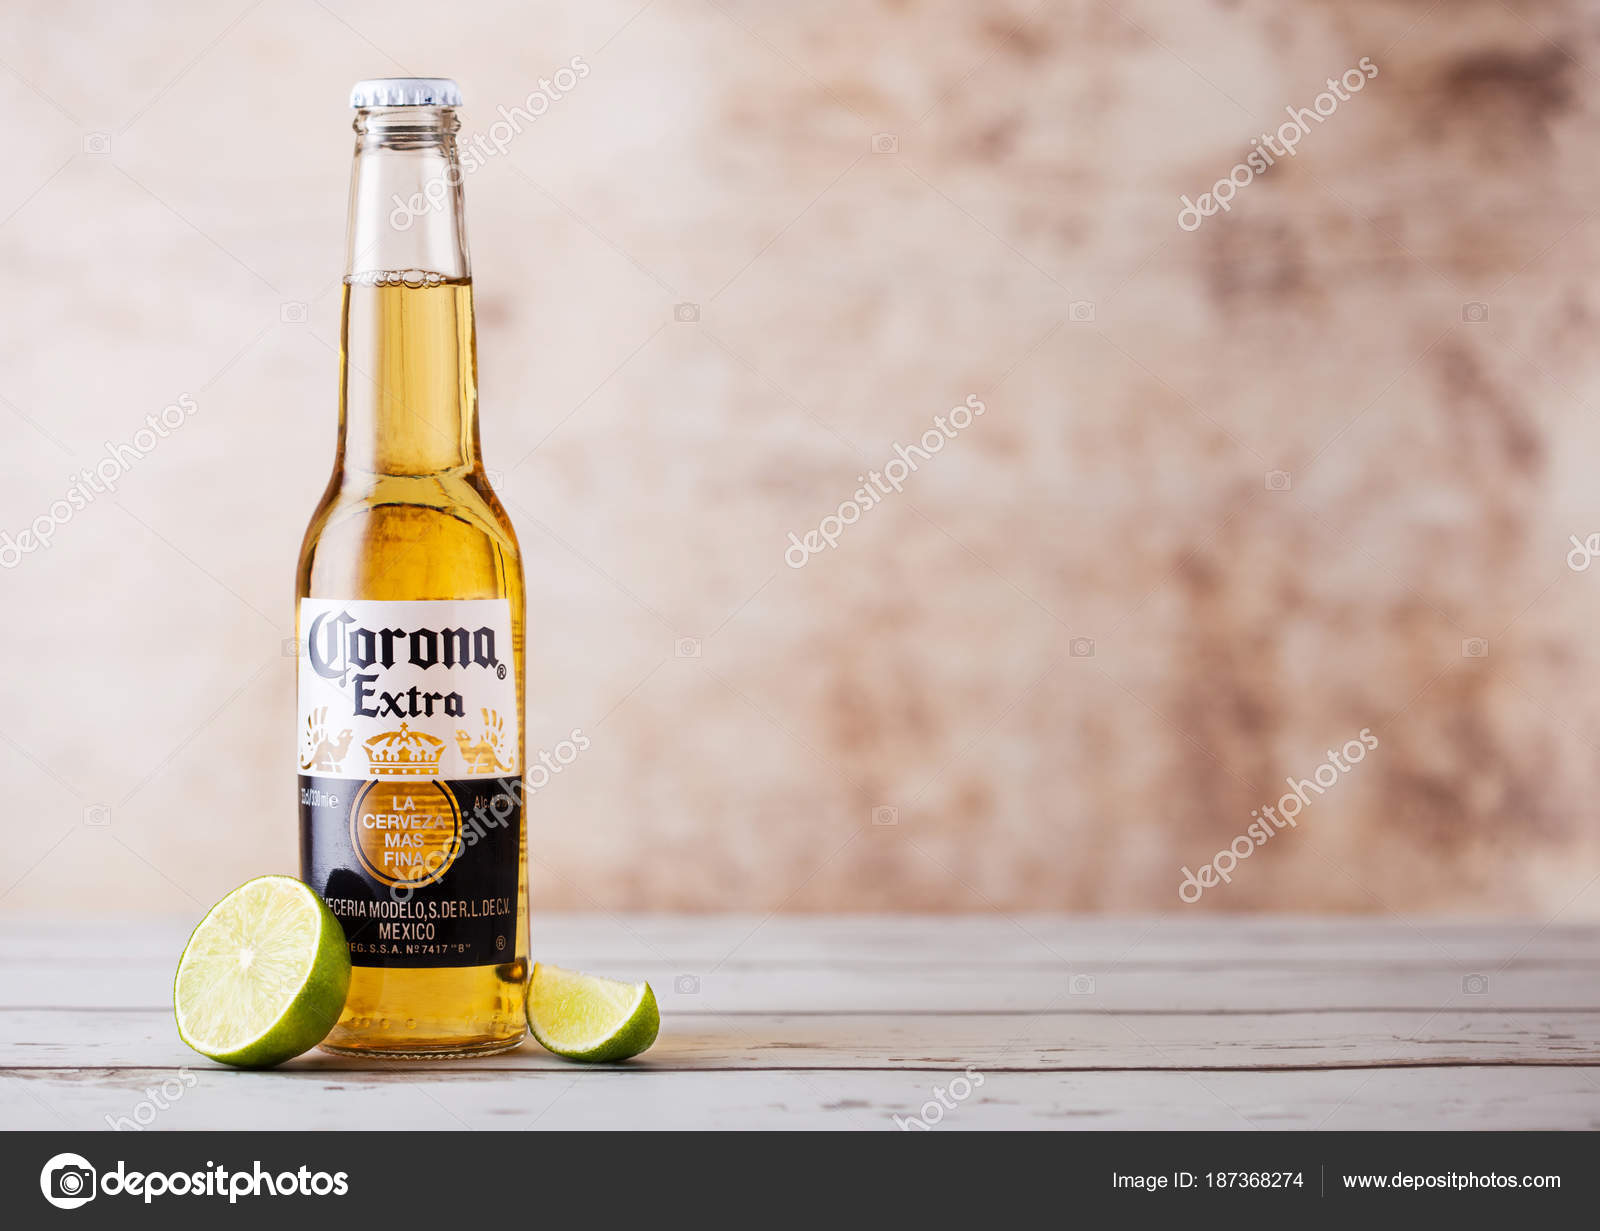 London Uk March 10 2018 Bottles Of Corona Extra Beer With Lime Slice On Wood Corona Is The Most Popular Imported Beer In The Us Stock Editorial Photo C Denismart 187368274